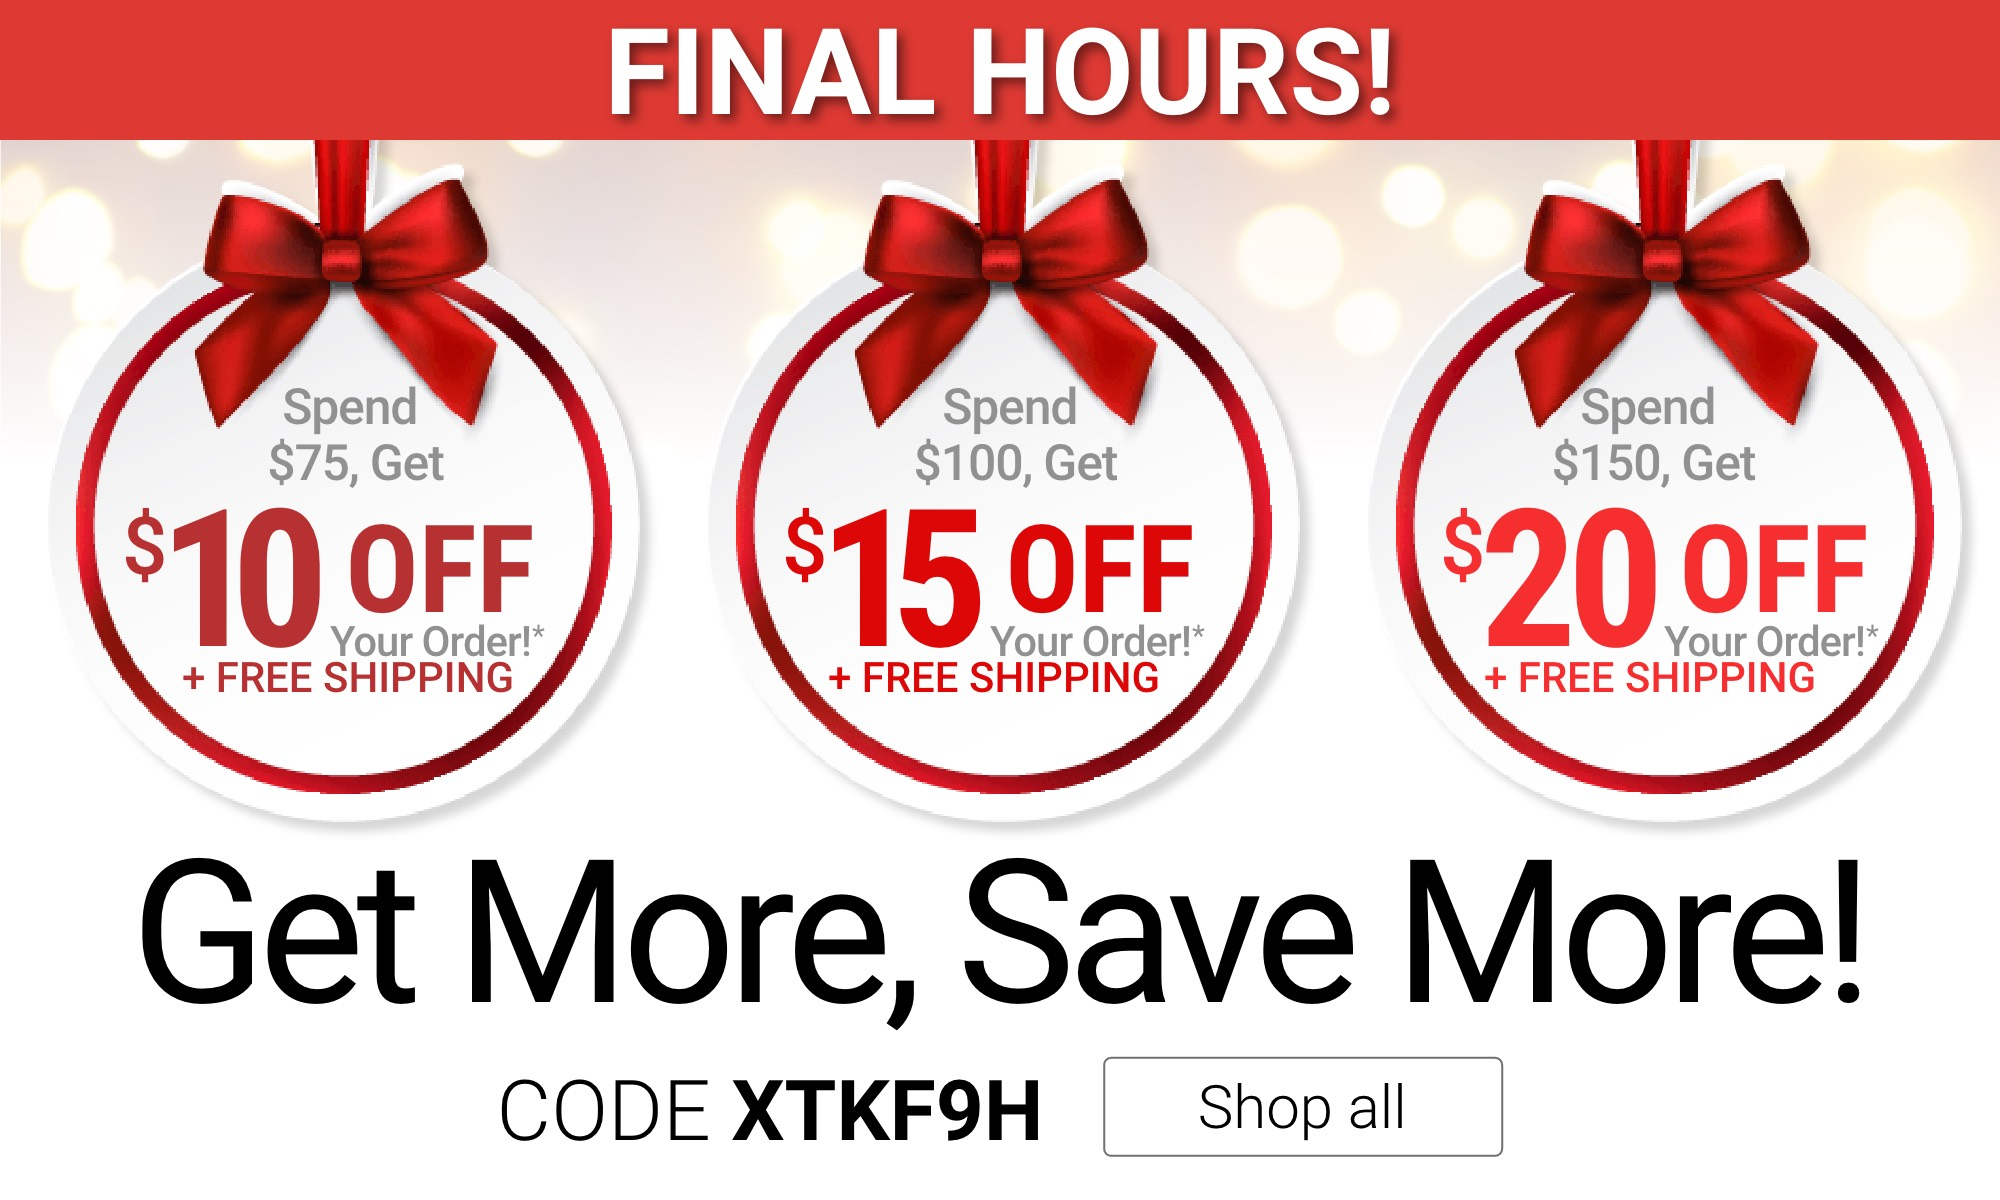 Final Hours Get More, Save More!